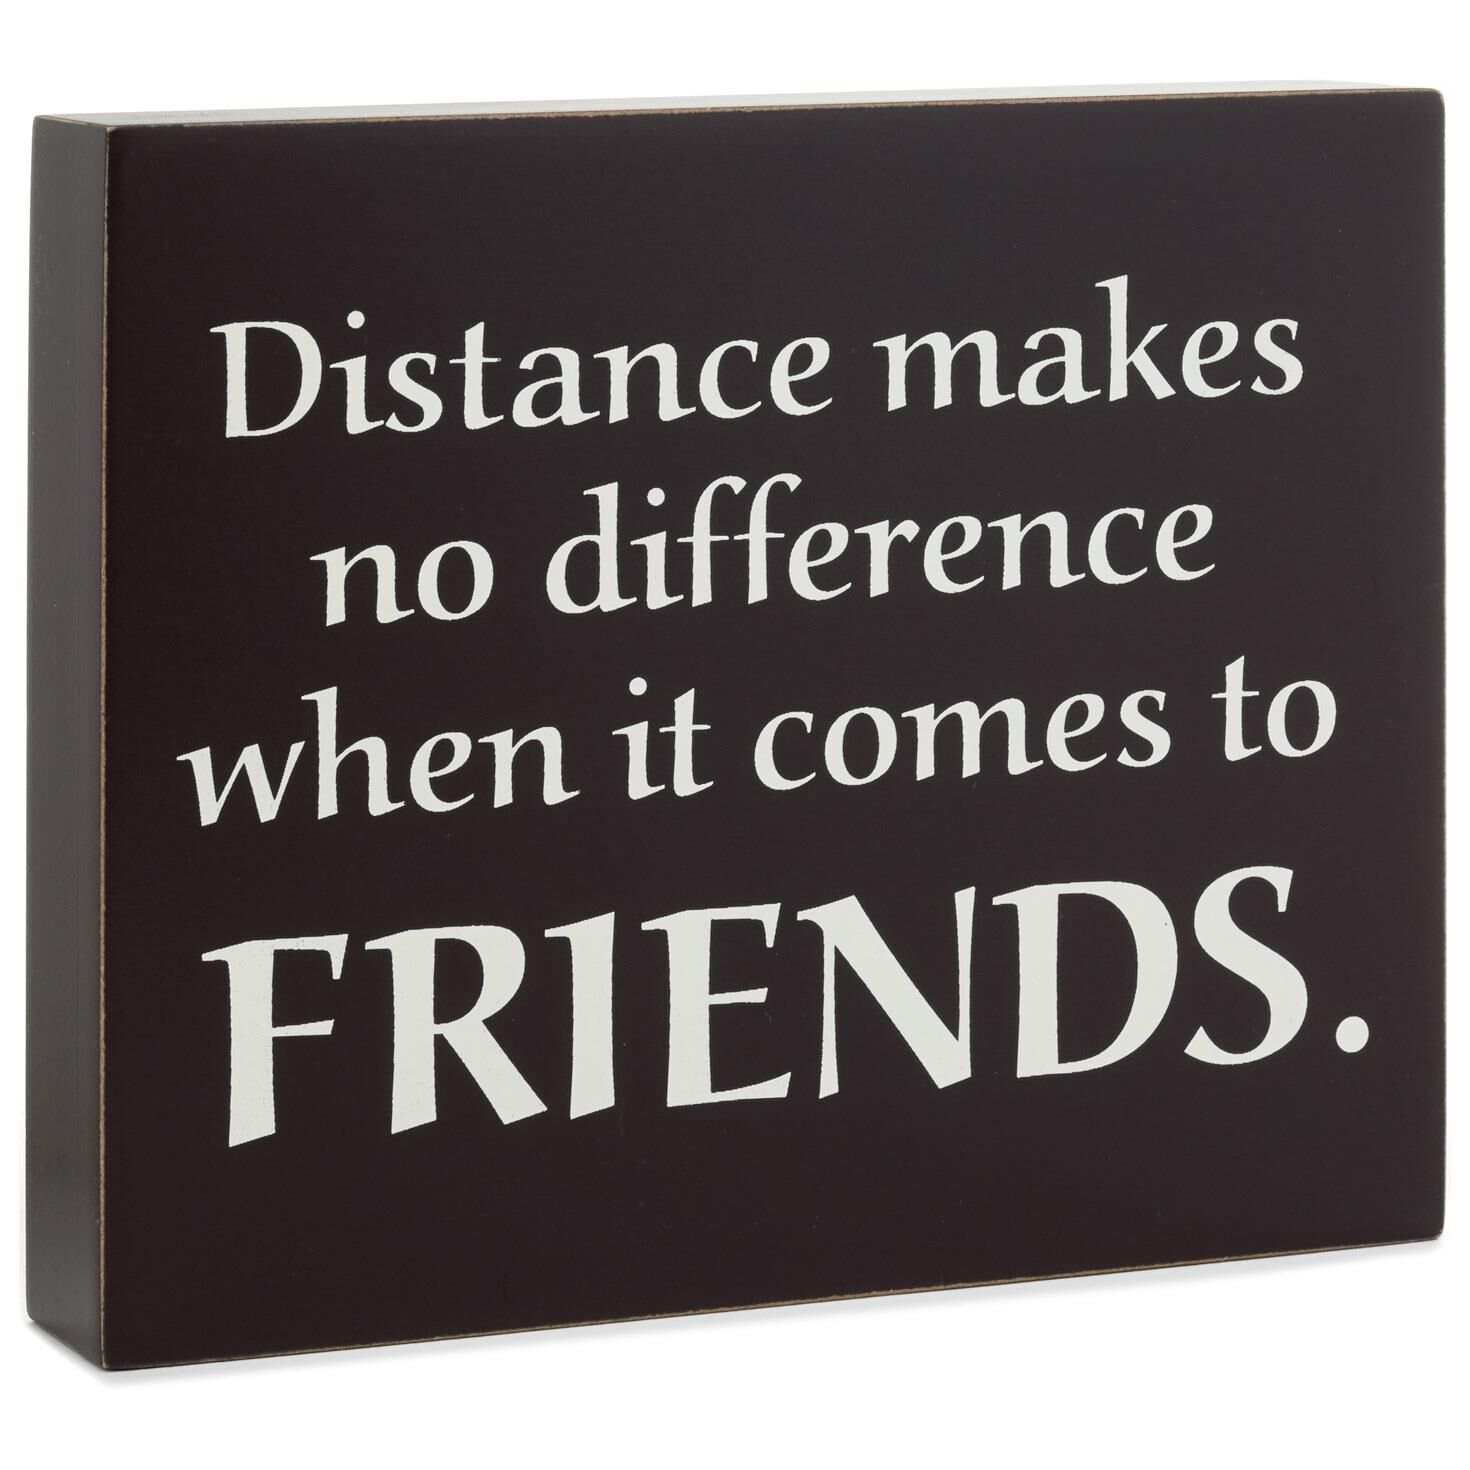 Quote About Distance And Friendship Friendship Withstands Distance Wood Quote Sign 7X6  Plaques